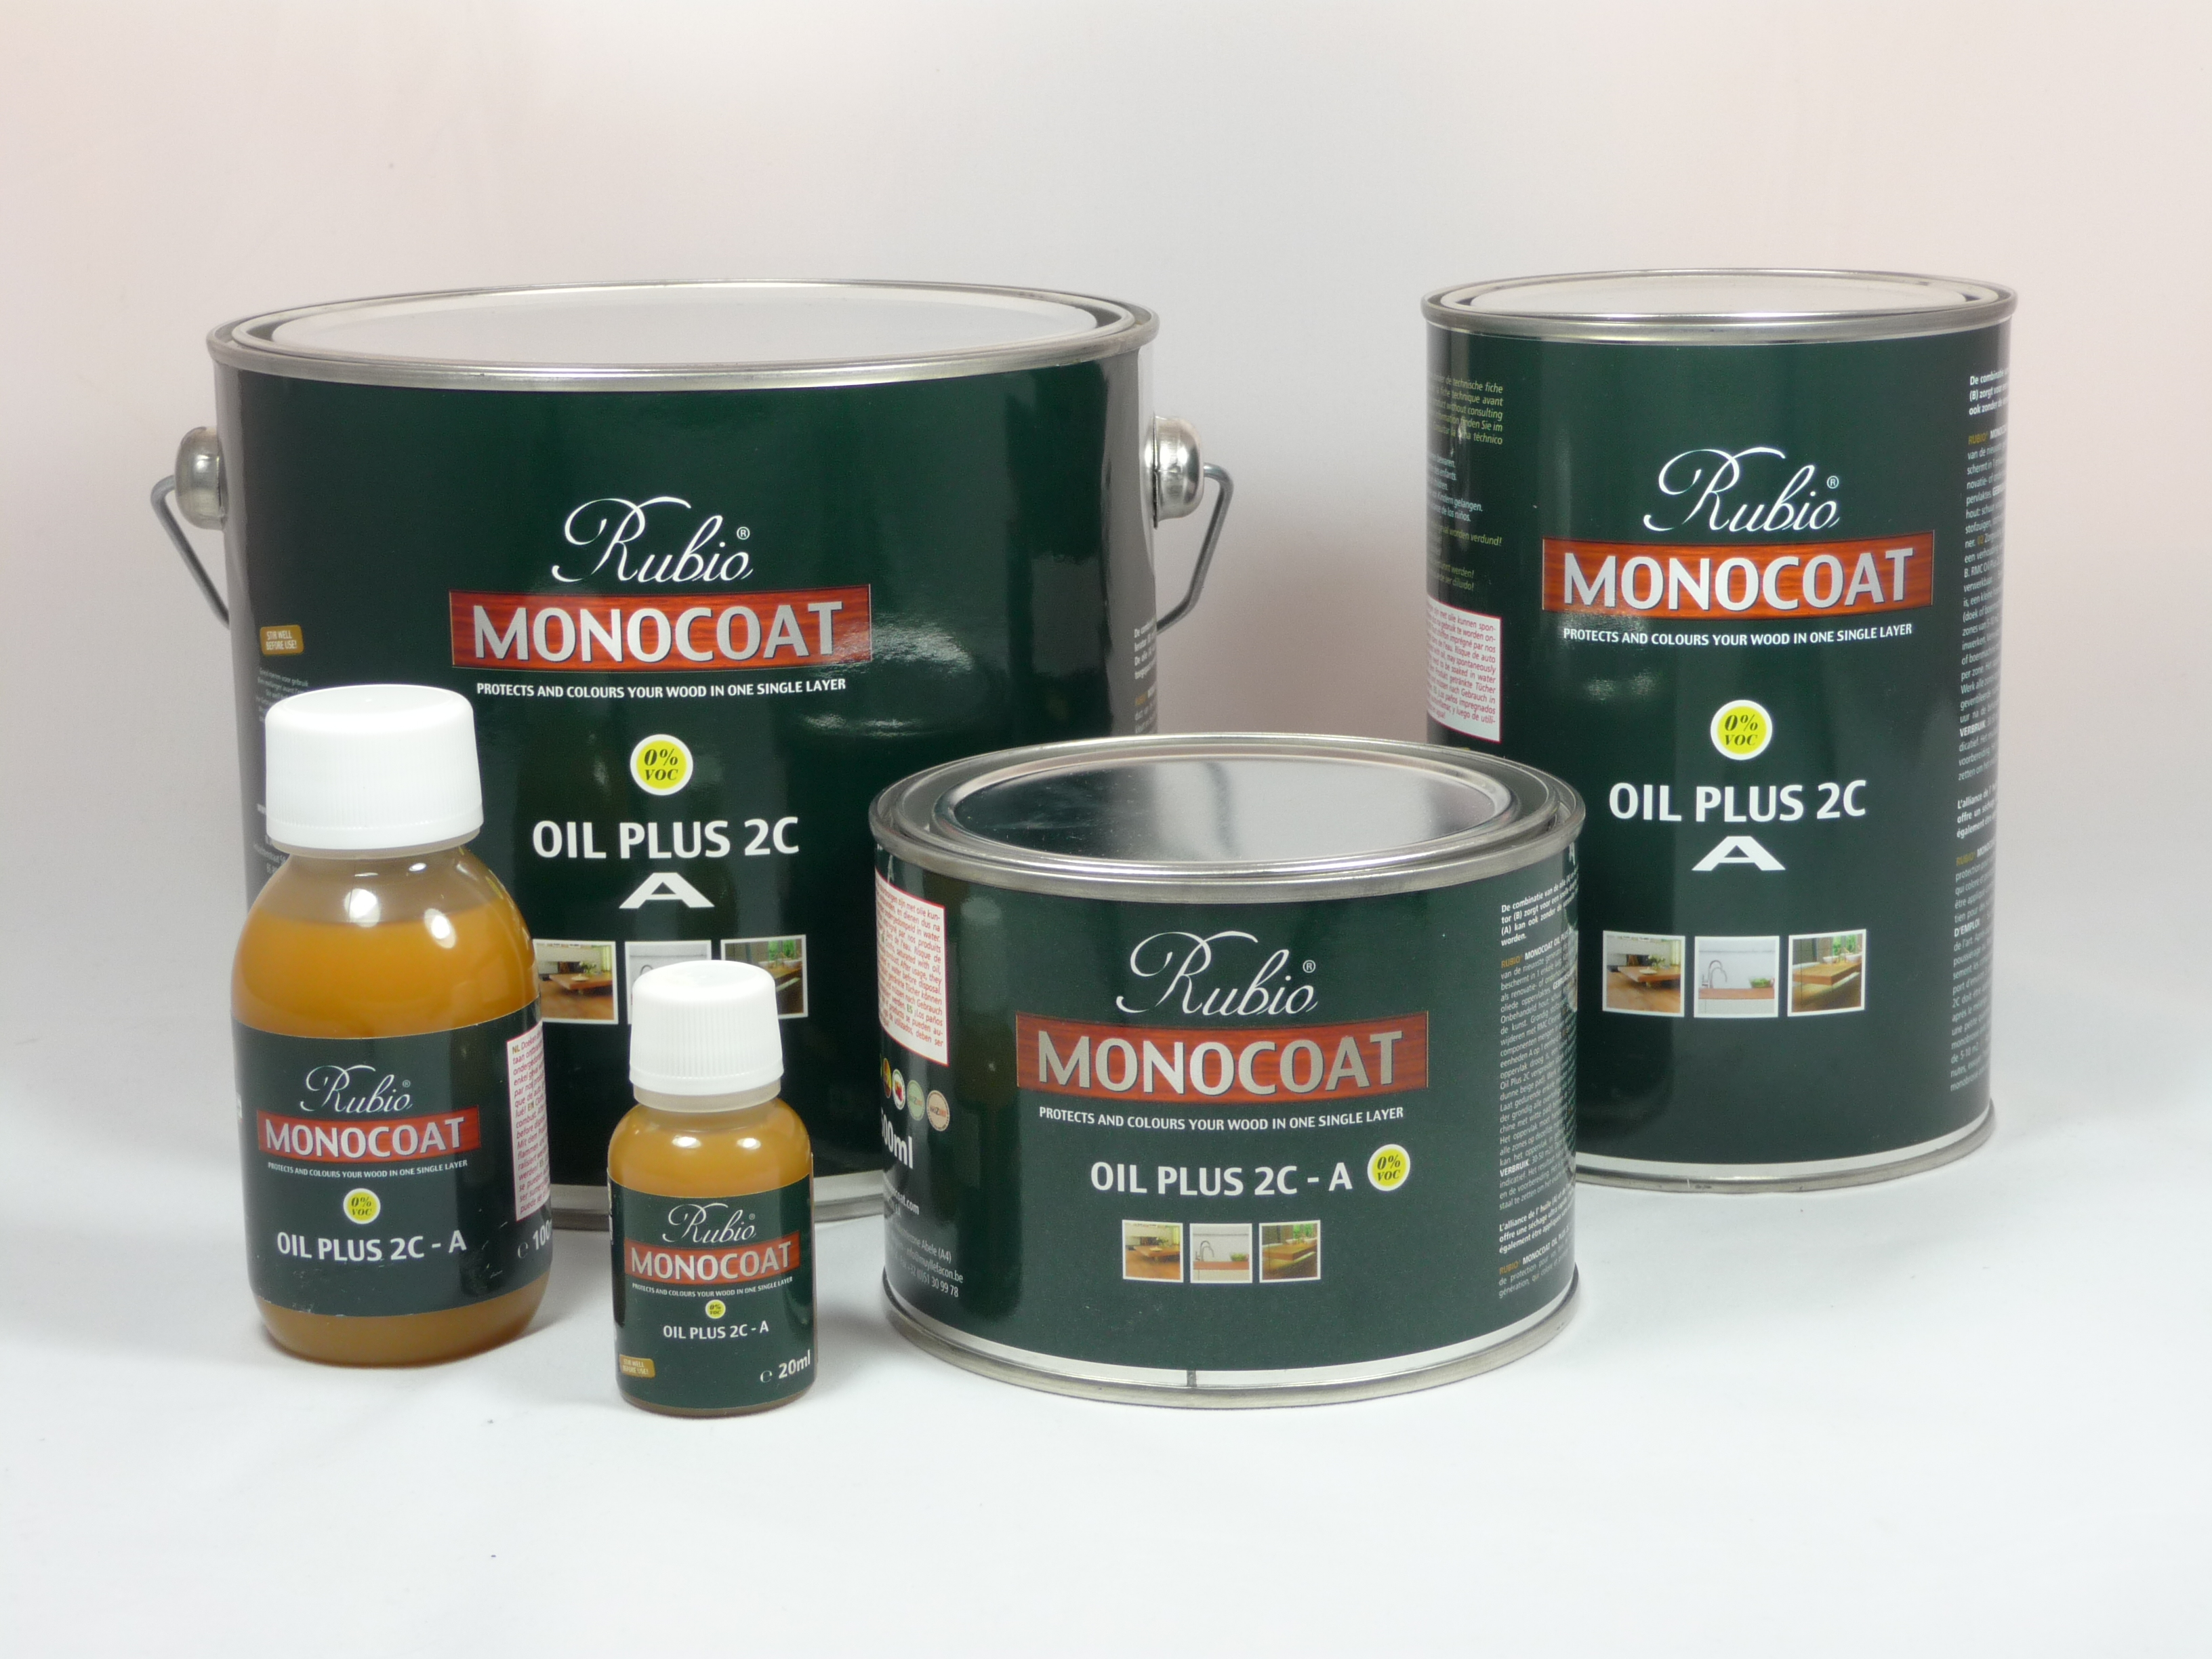 Rubio Monocoat Charcoal Oil Plus 2C